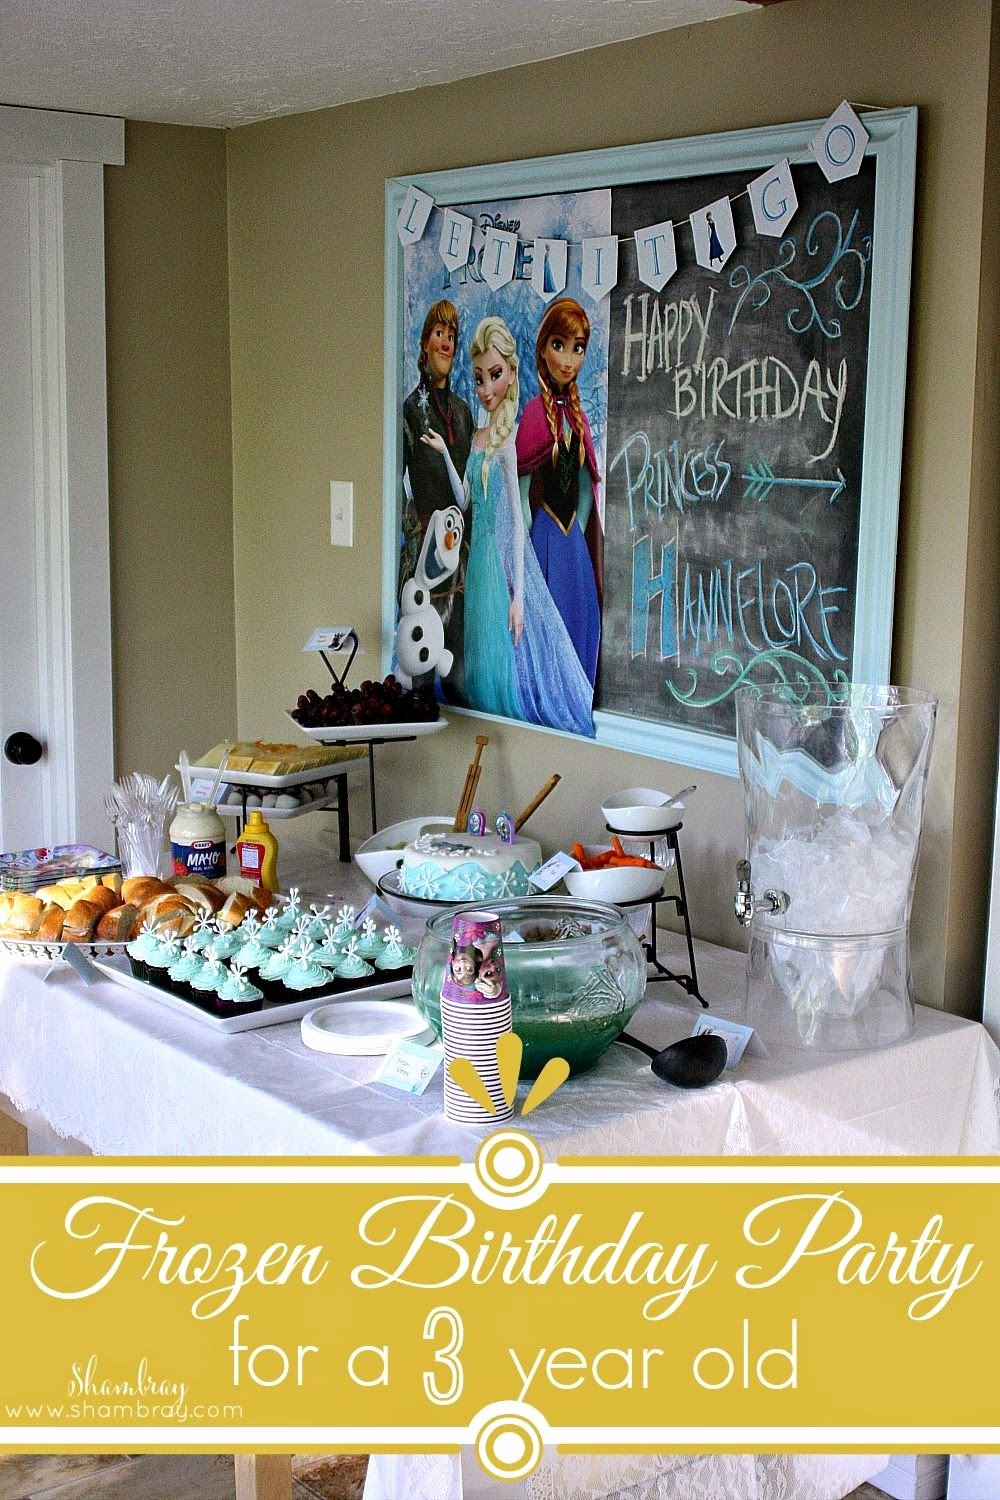 3 Year Old Birthday Decoration Ideas Beautiful A Frozen Birthday Party for A 3 Year Old